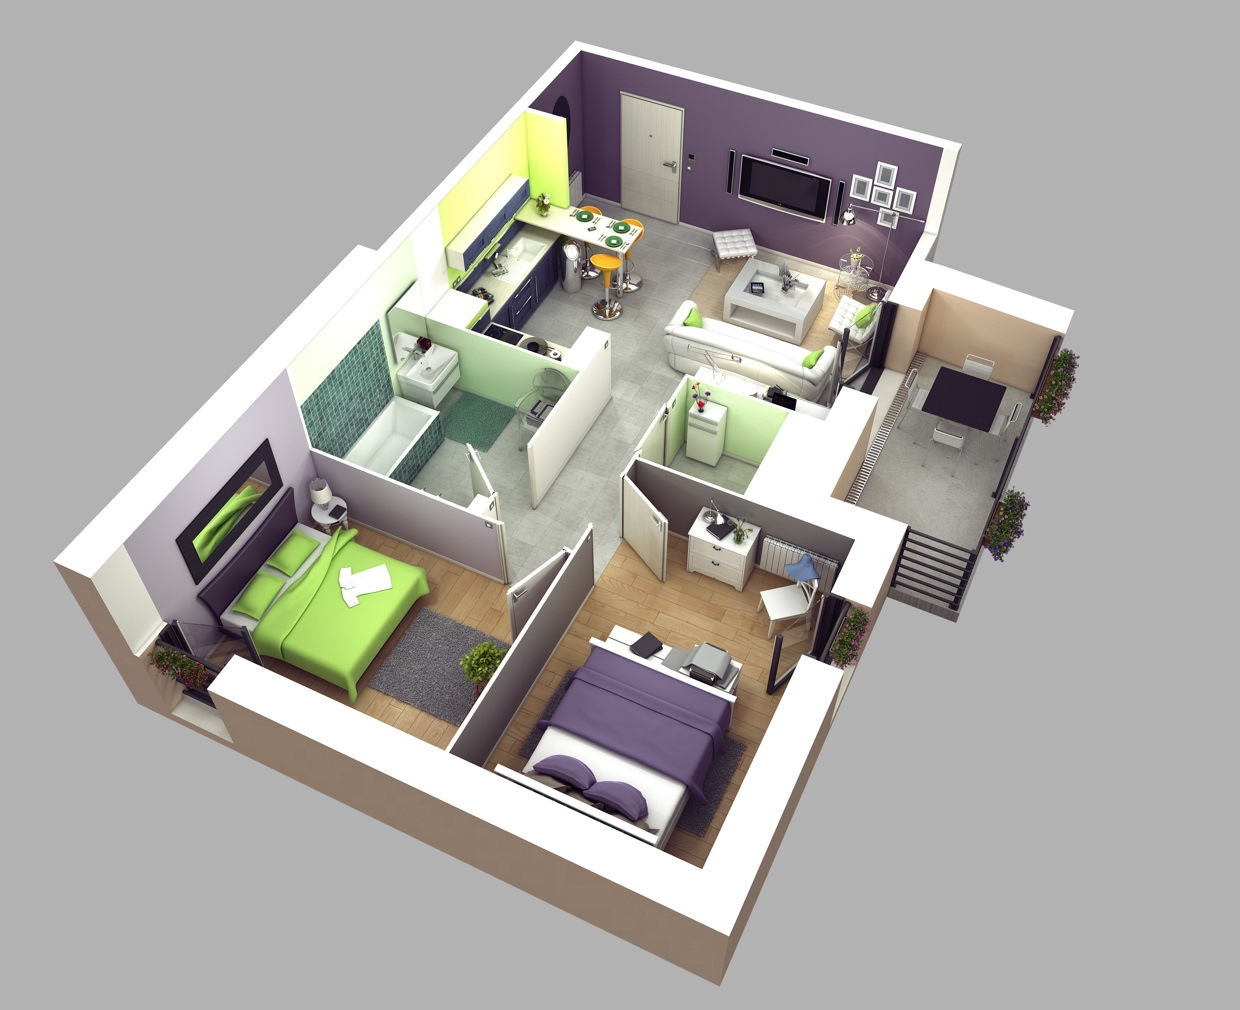 captivating house floor plans line ideas best online home plan design 5-Two-bedroom-house-plan